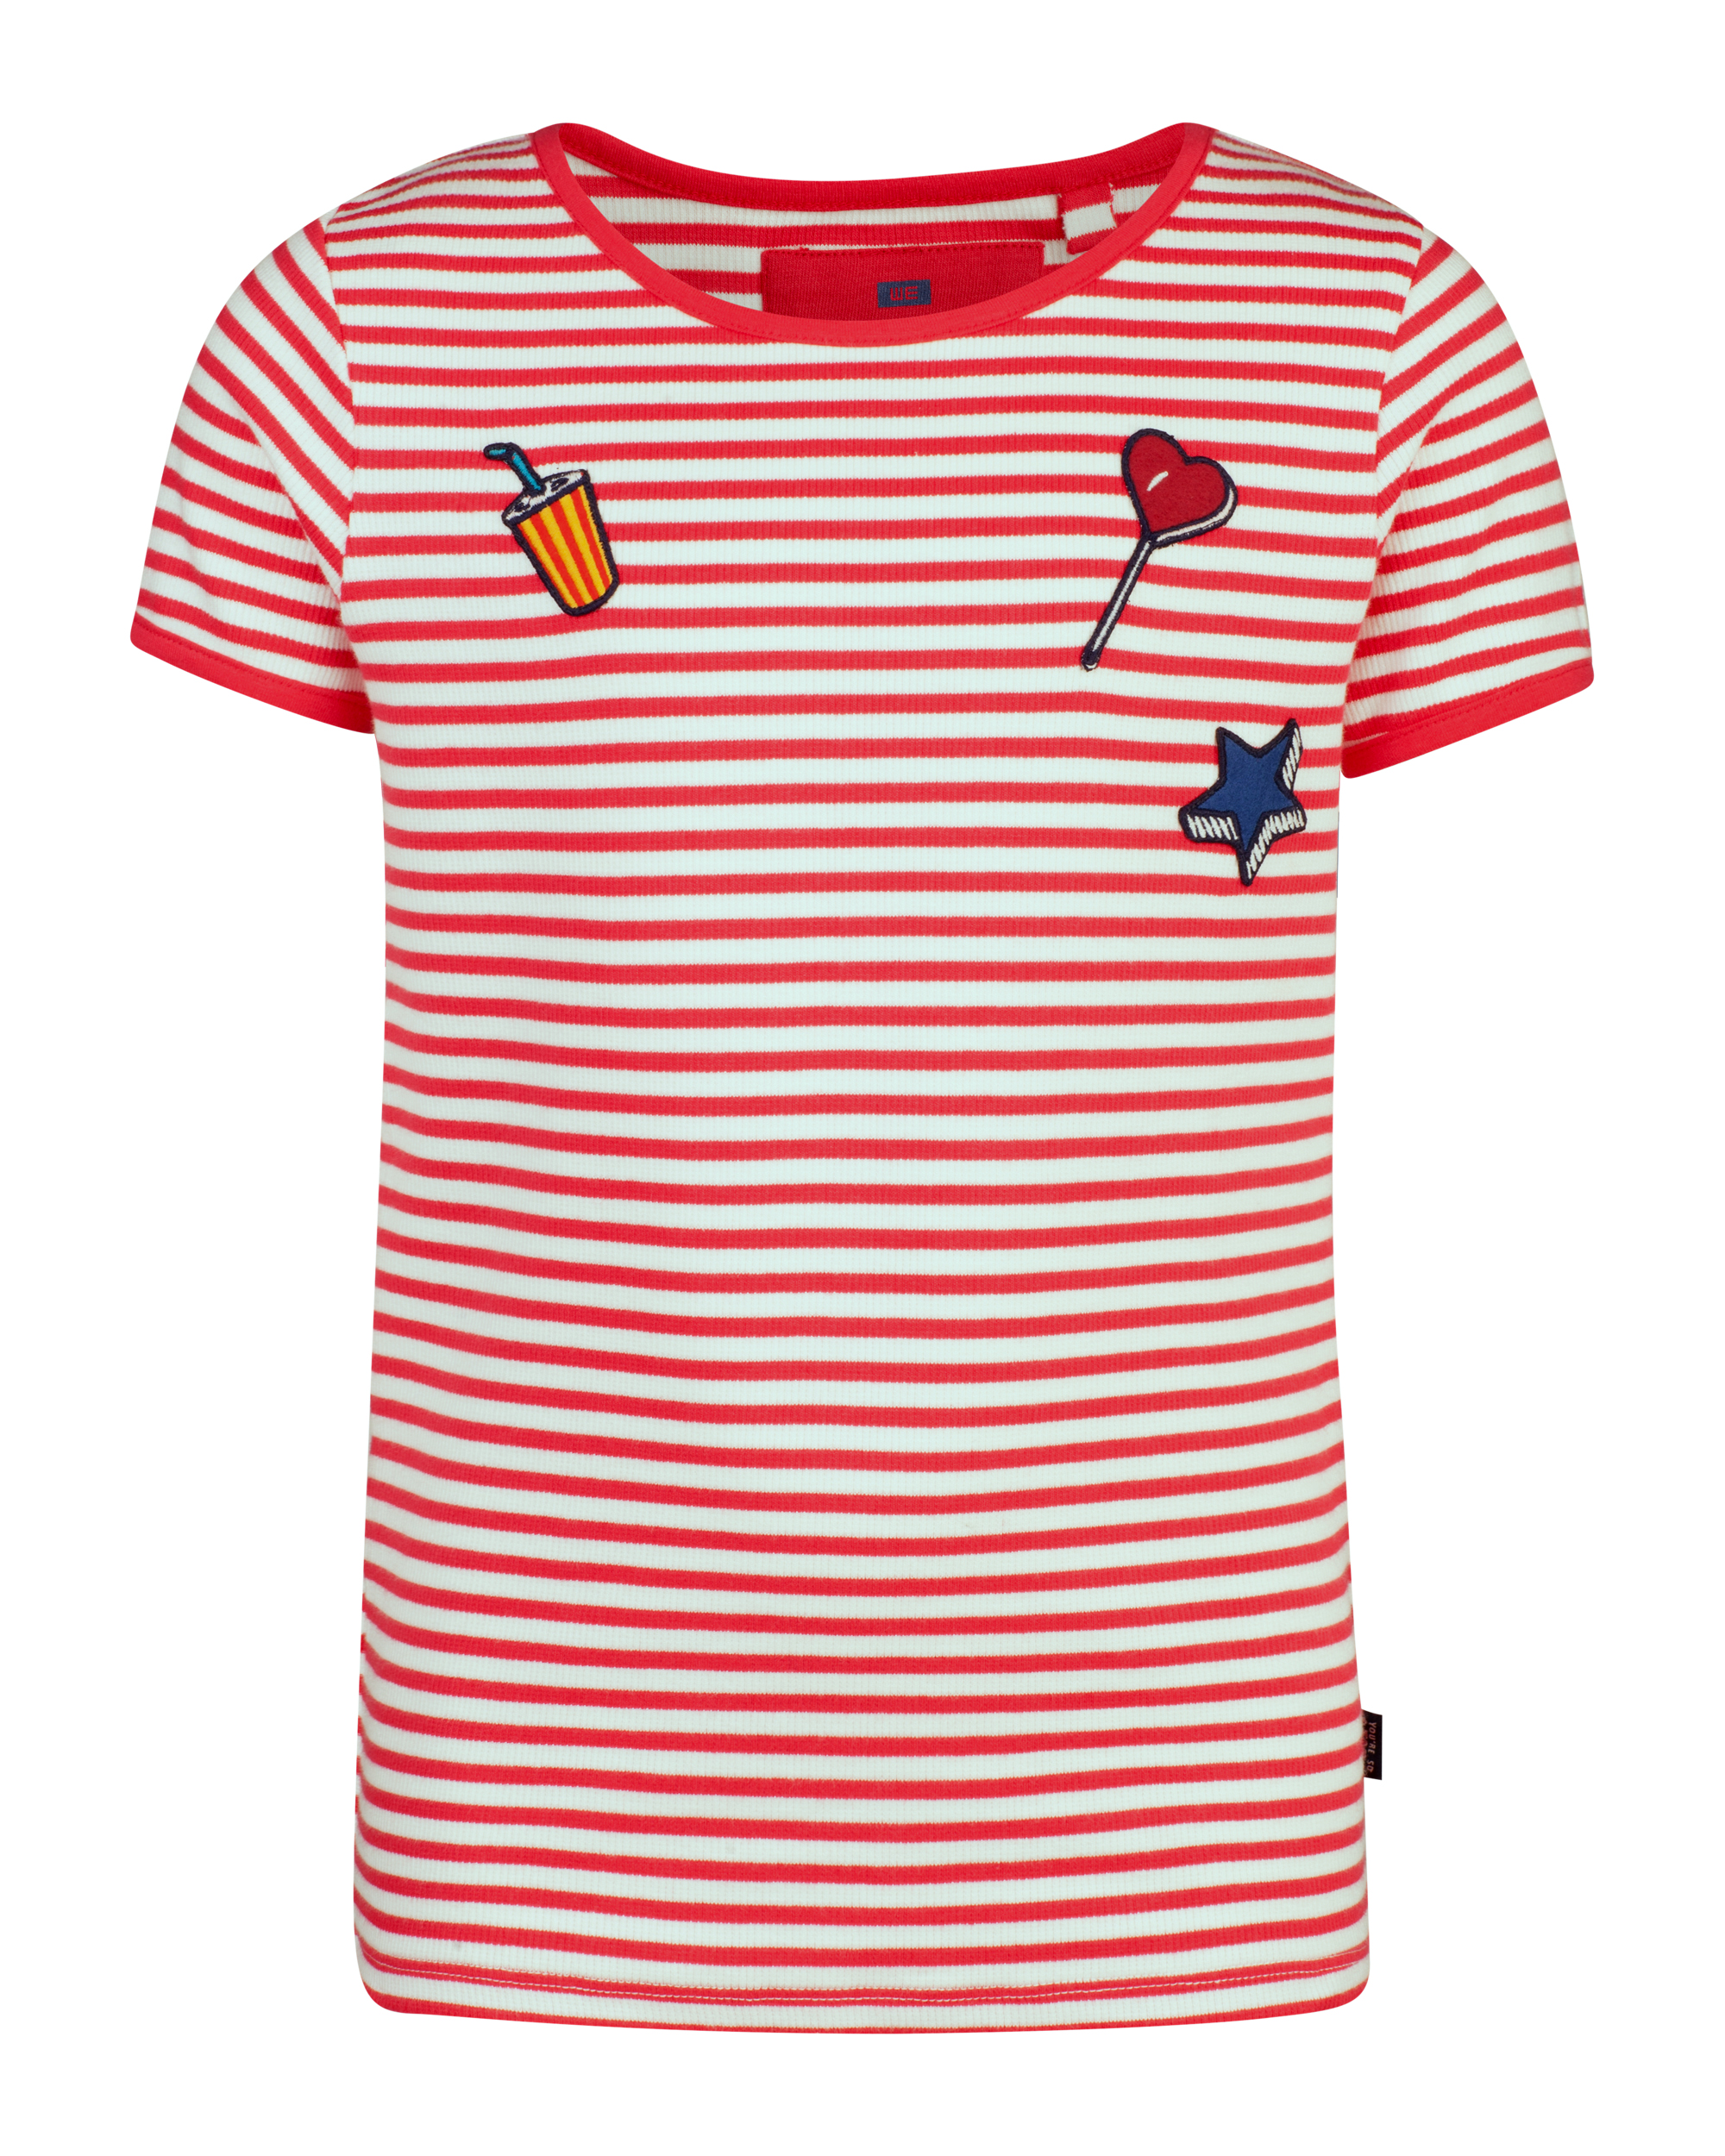 Meisjes striped print t-shirt